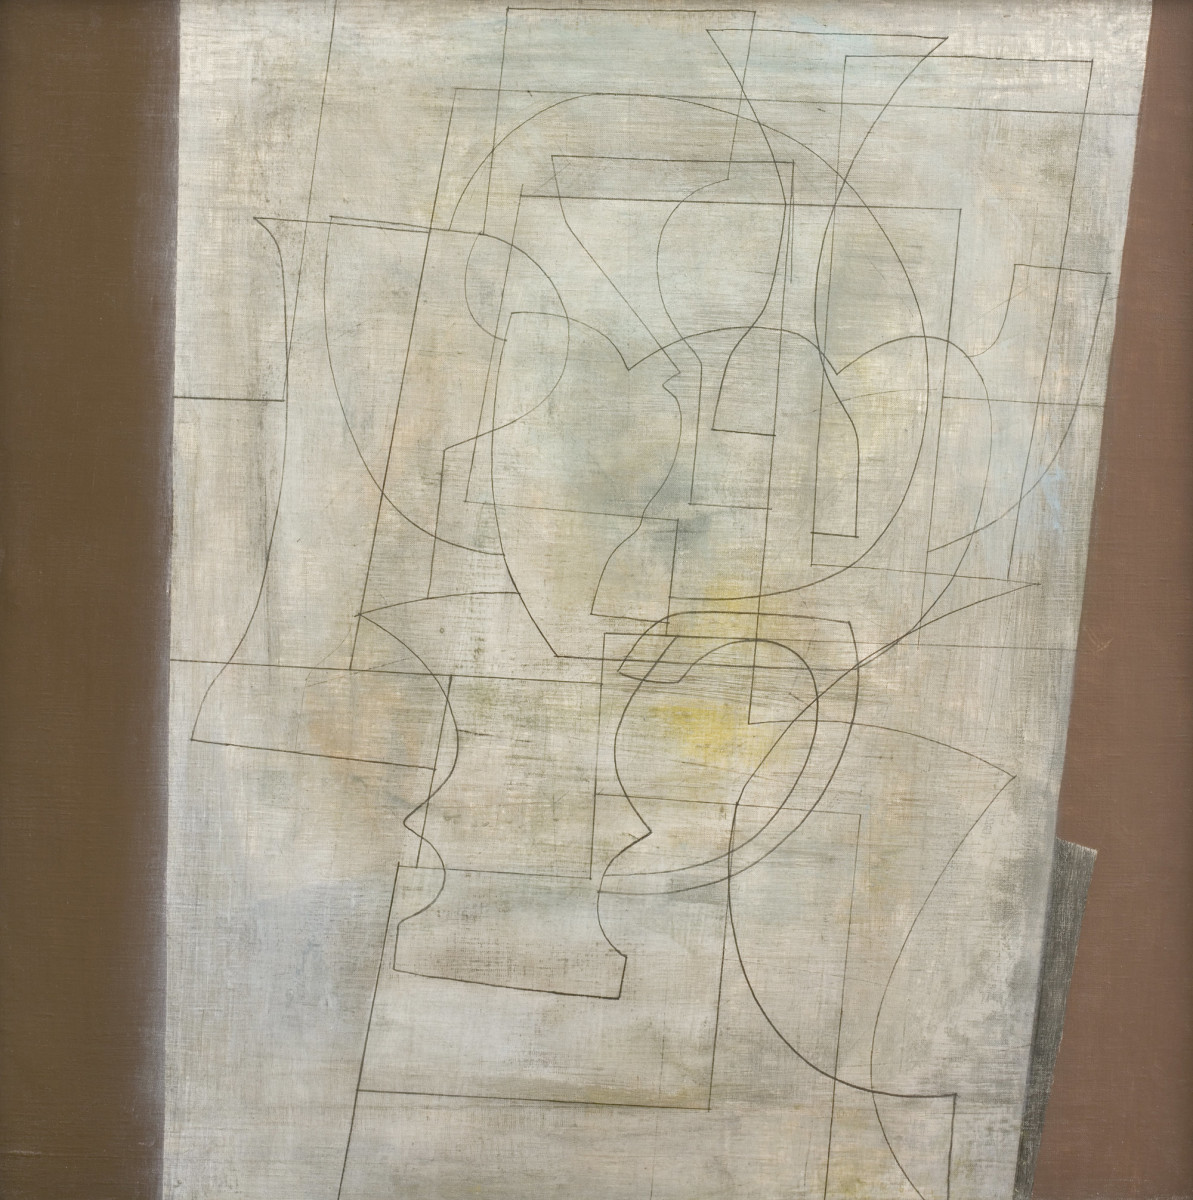 "<div class=""artist""><strong>Ben Nicholson</strong></div><div class=""title_and_year""><em>May 1955 (Green Chisel)</em>, 1955</div><div class=""medium"">Oil and pencil on canvas</div><div class=""dimensions"">61 x 61 cm<br/> 24 1/8 x 24 1/8 in</div><div class=""signed_and_dated"">Signed and titled verso 'Ben Nicholson May 1955 (Green Chisel)'</div>"